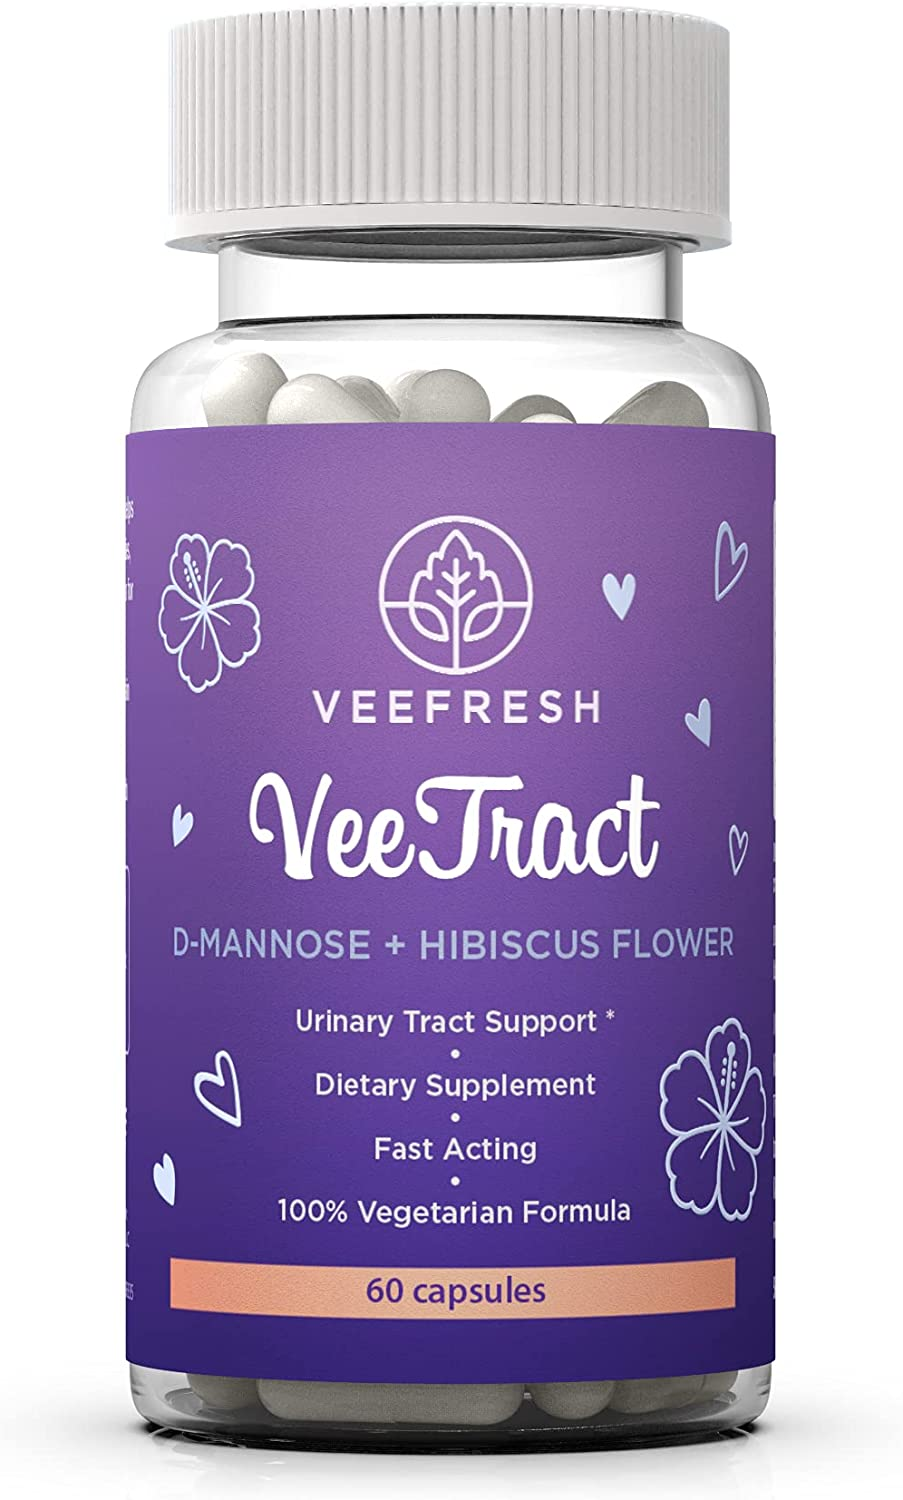 VeeFresh VeeTract Urinary Tract Support D with - Manno D-Mannose Ranking TOP2 Outlet SALE